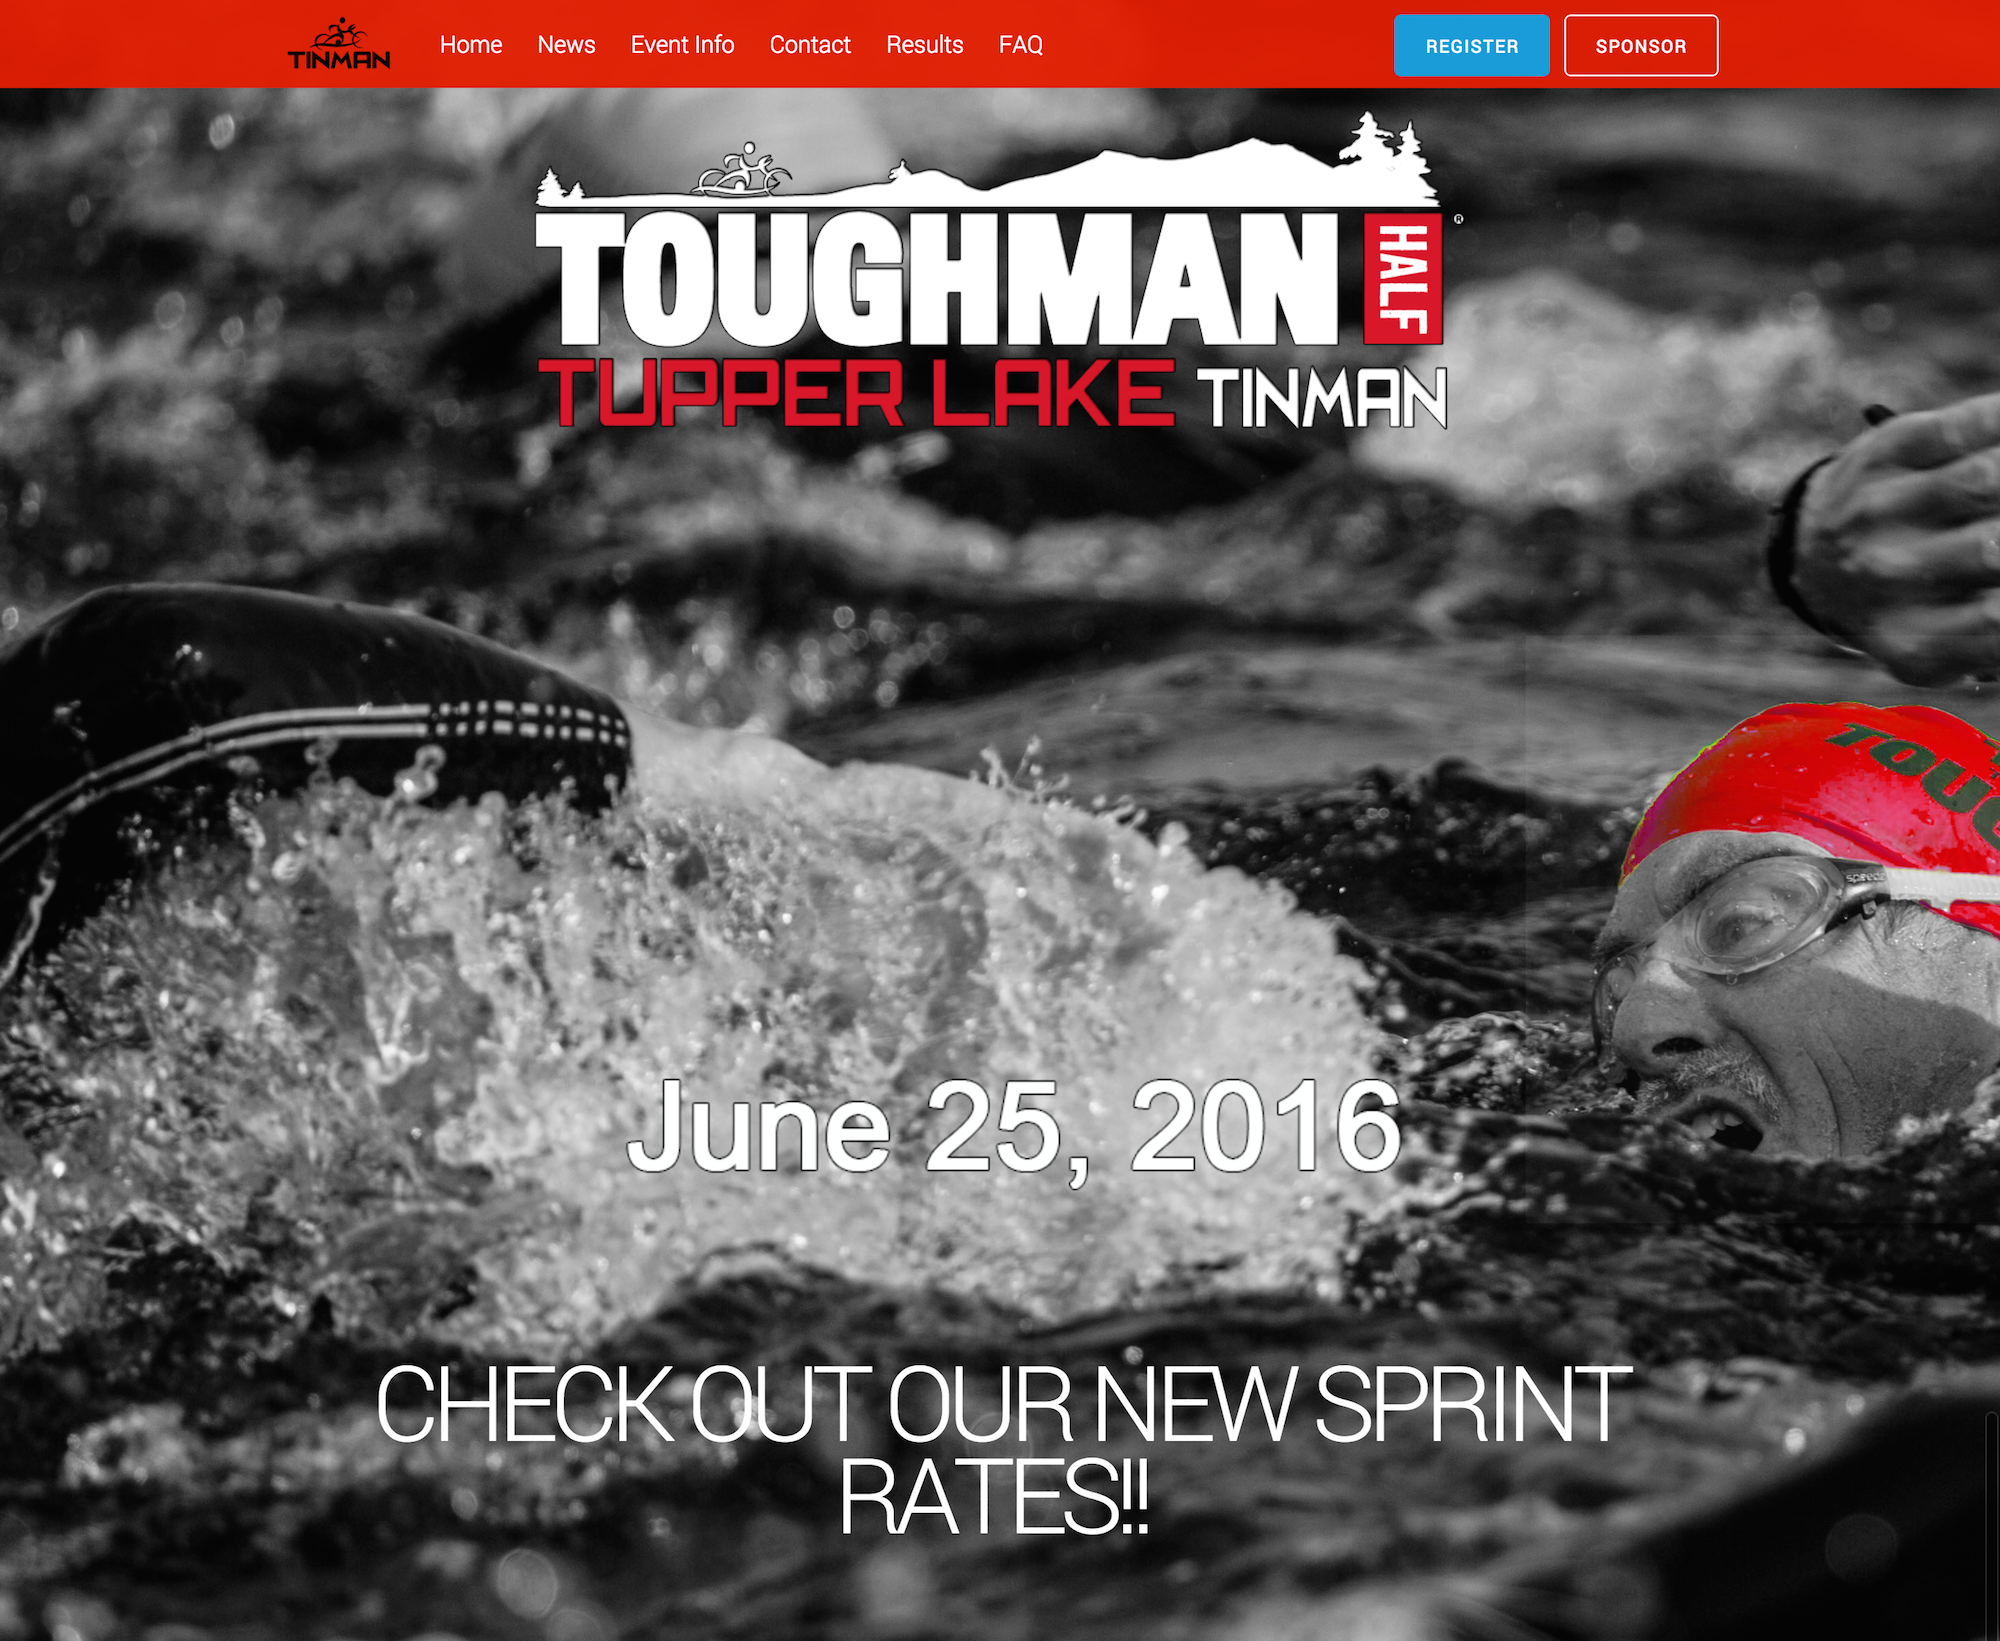 Tinman   TOUGHMAN Tupper Lake Tinman Triathlon